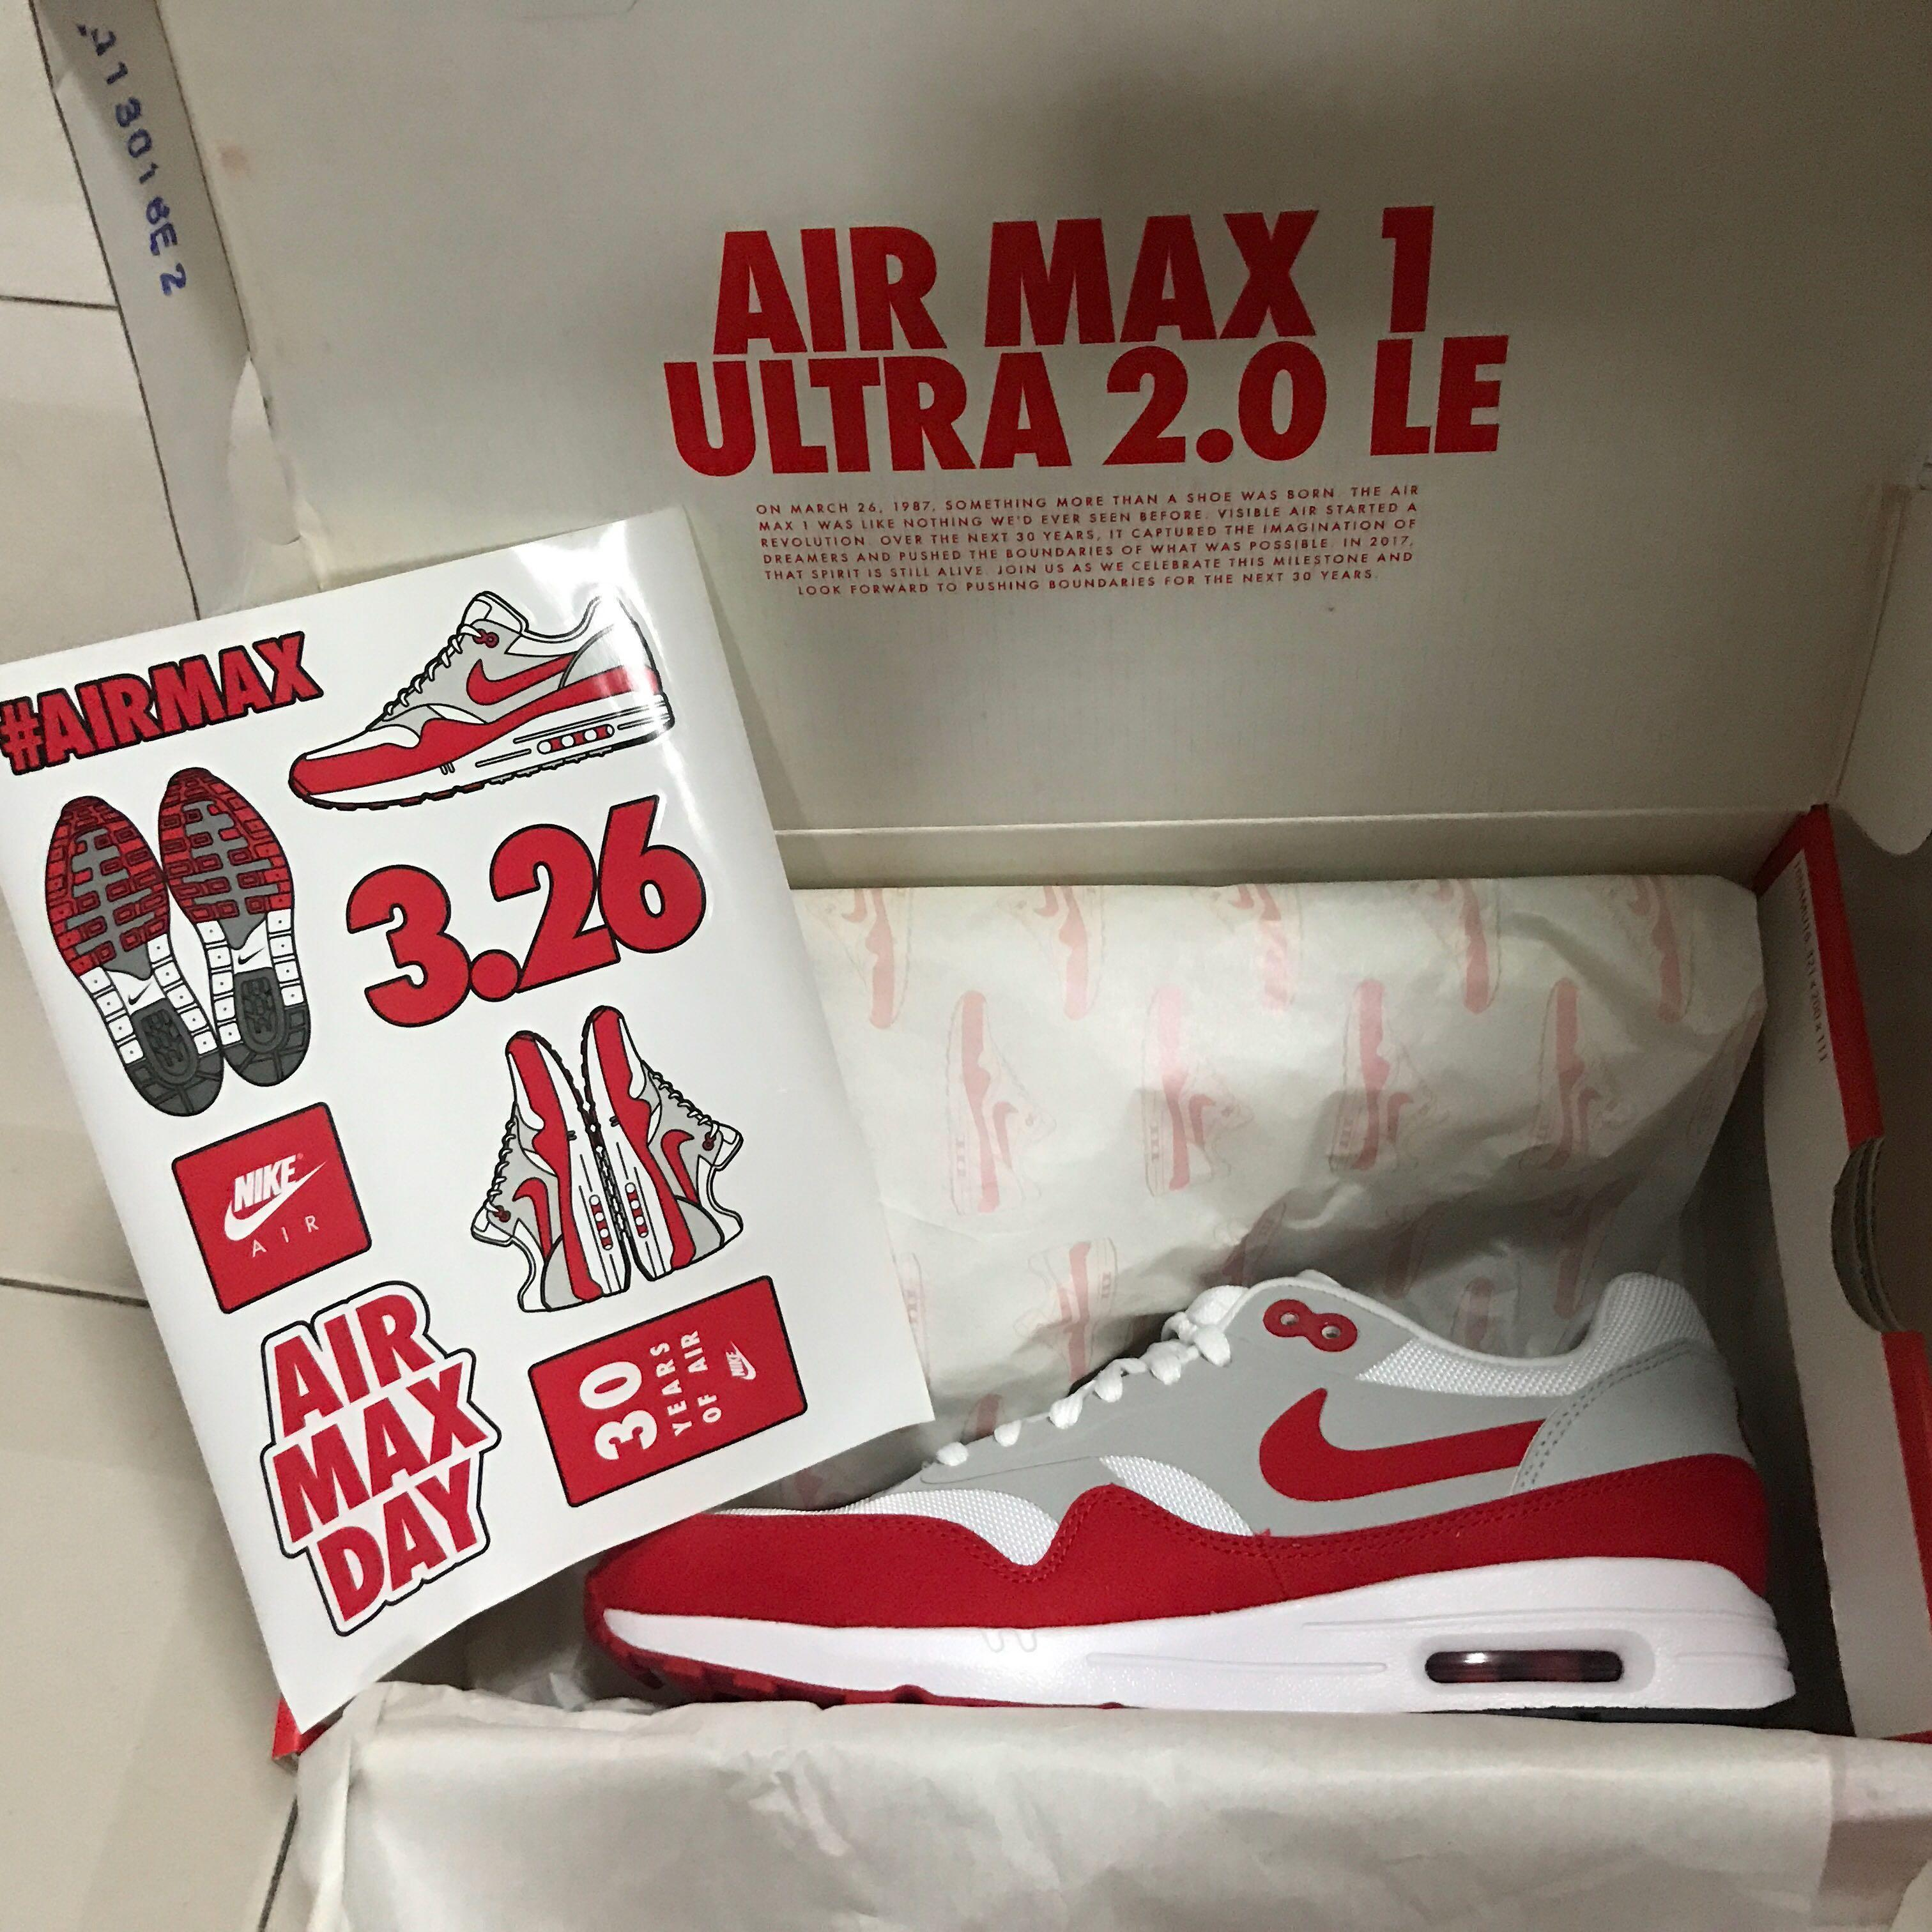 US8.5 Nike air max 1 ultra 2.0 le limited edition, Women's